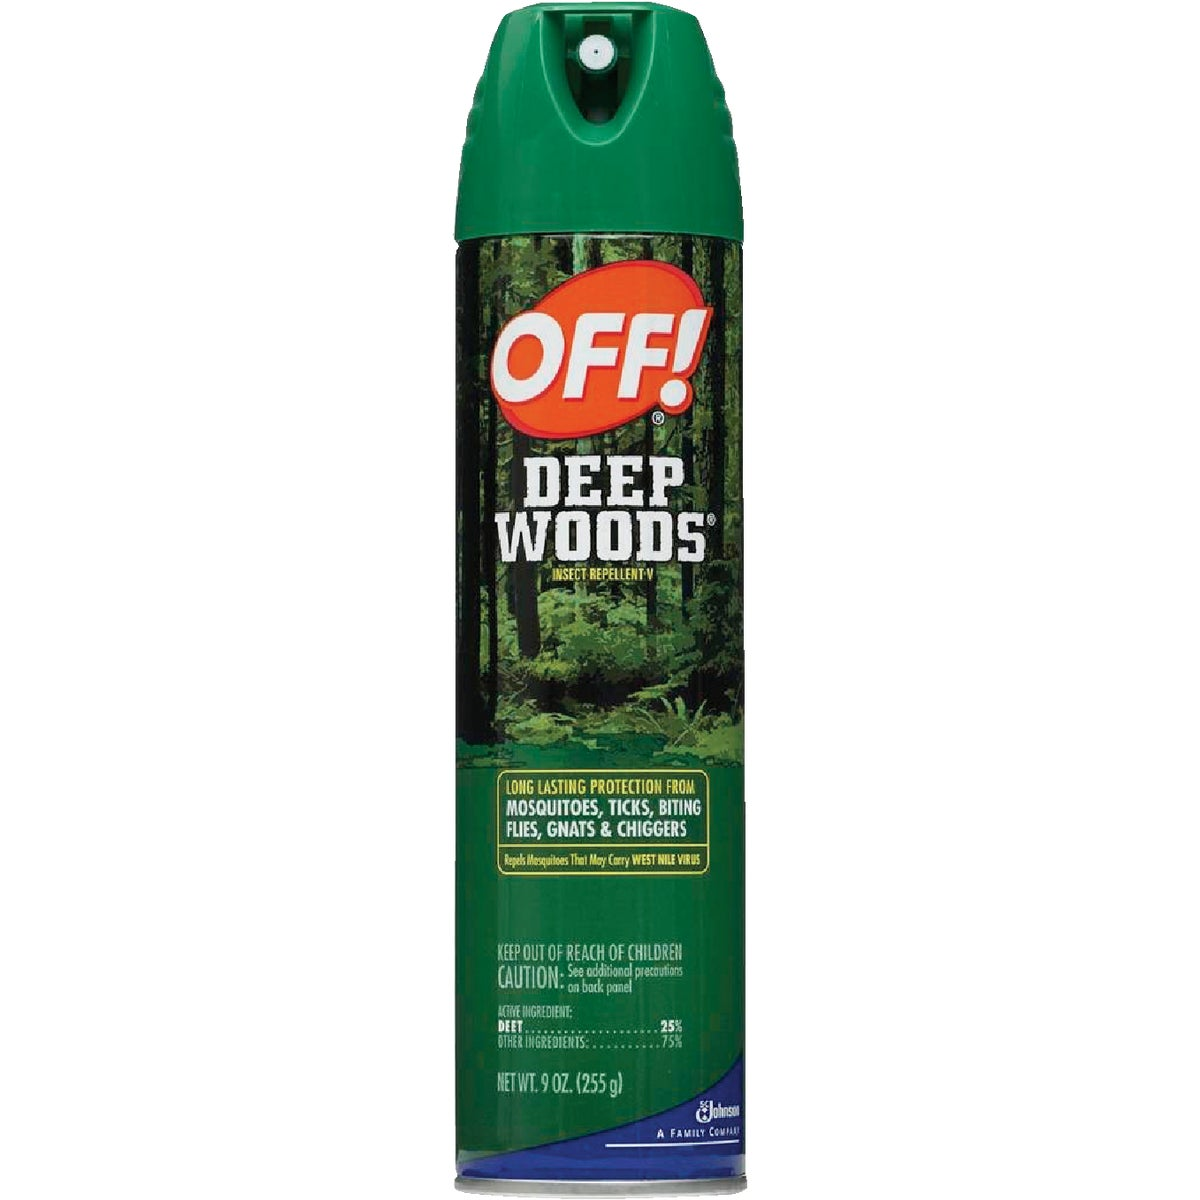 DEEP WOODS BUG REPELLENT - 22930 by Sc Johnson